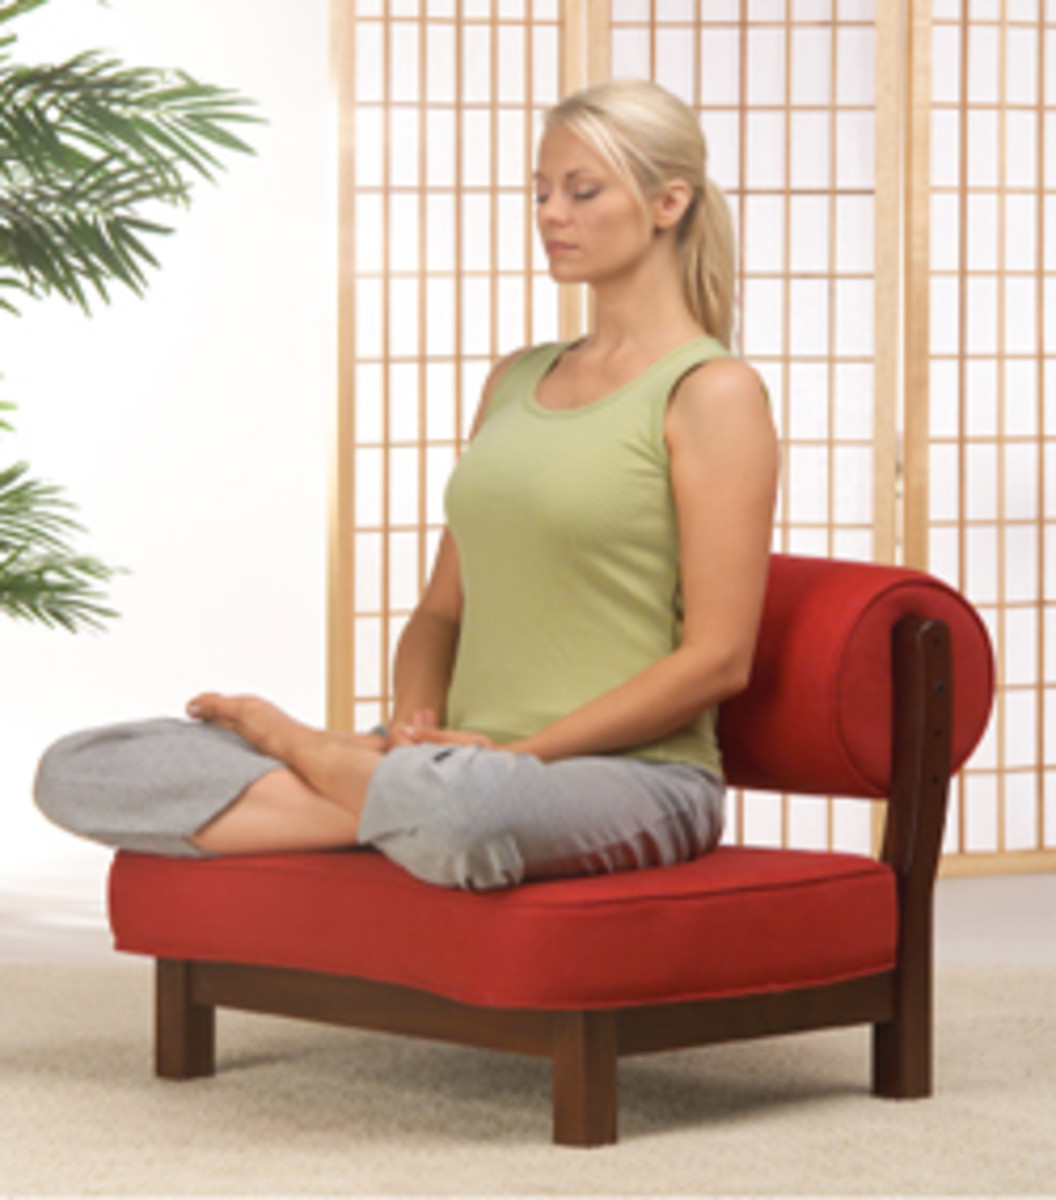 Meditation Chairs an Unlikely Meditation Ally